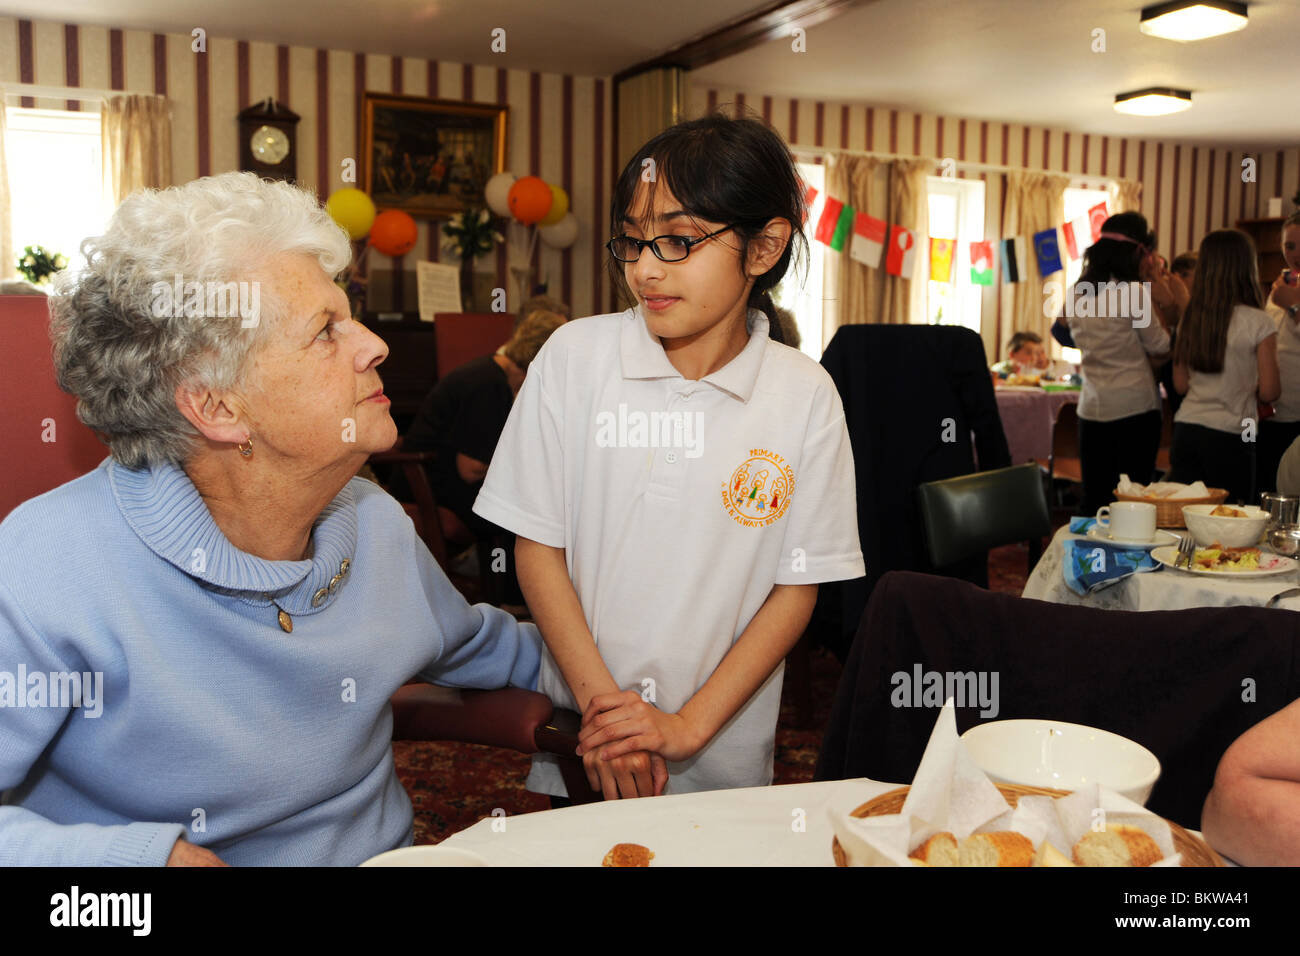 Primary School children meet elderly people at their residential home as part of a 'meet the neighbor' inter - Stock Image